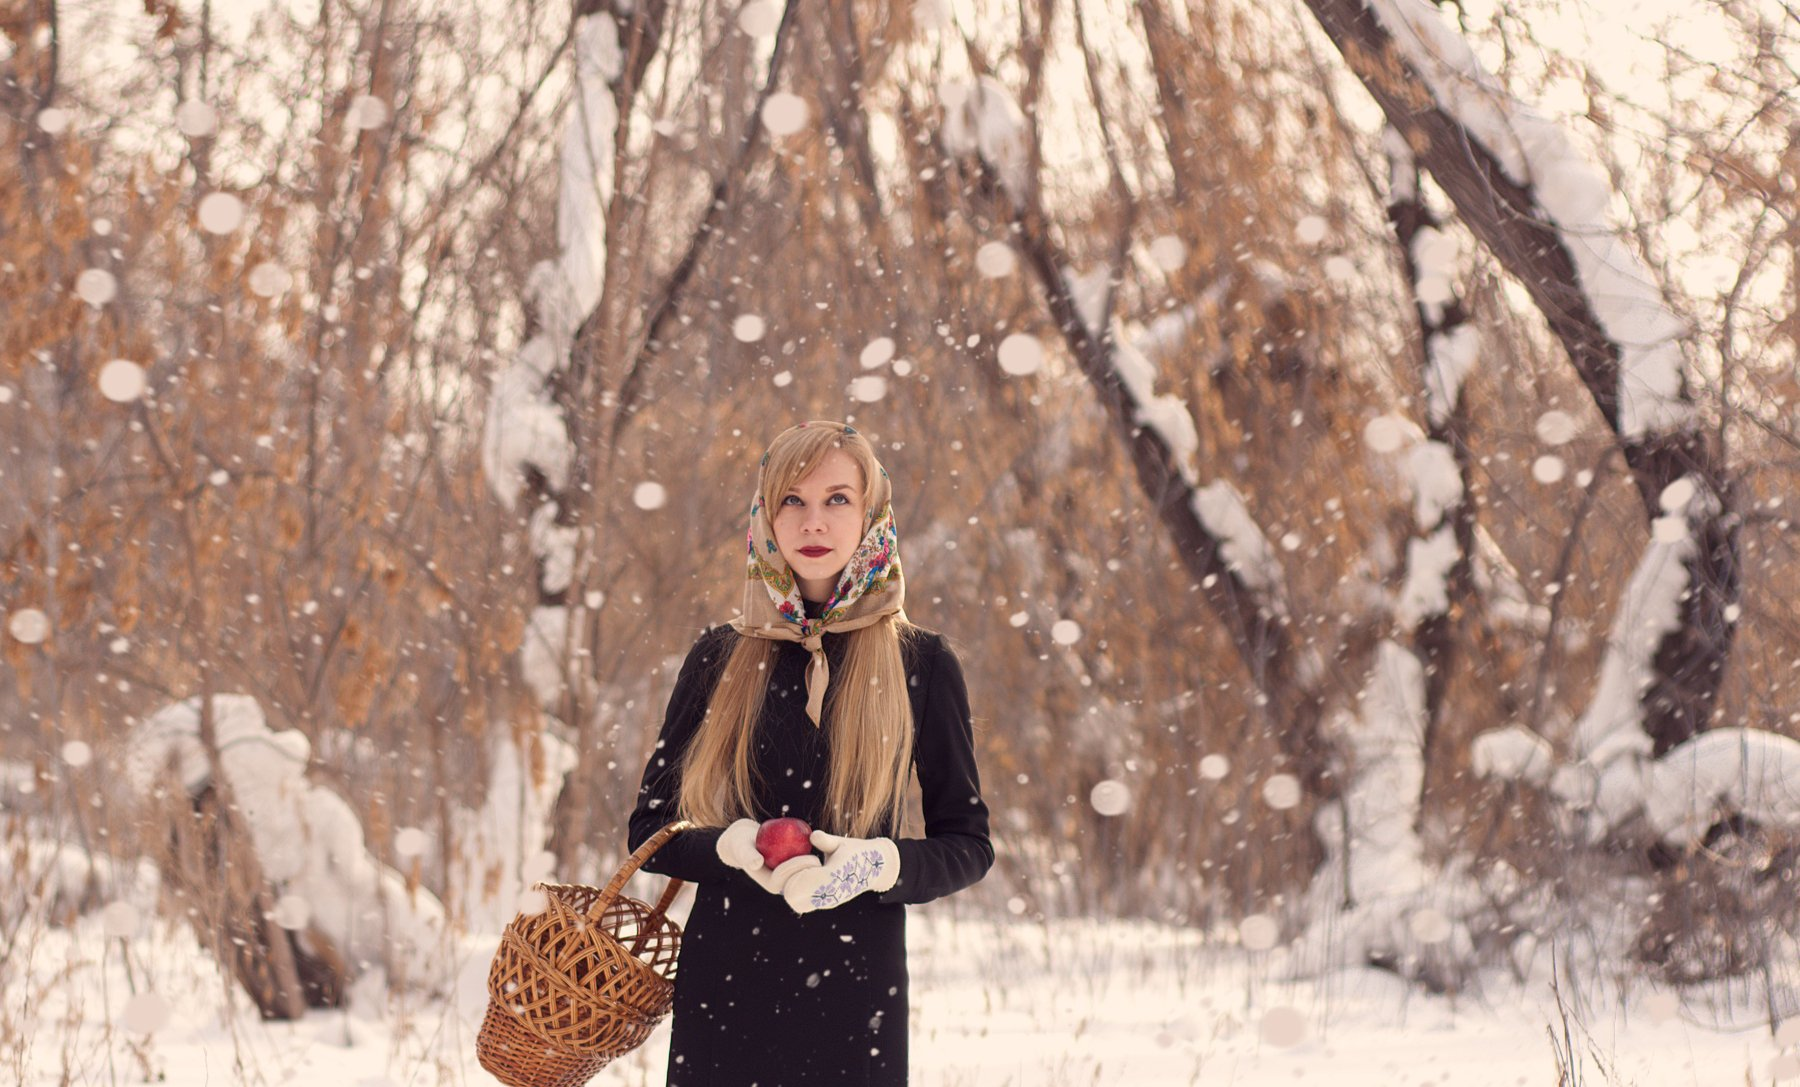 Alone, Forest, Girl, Russian, Snow, Winter, ashai